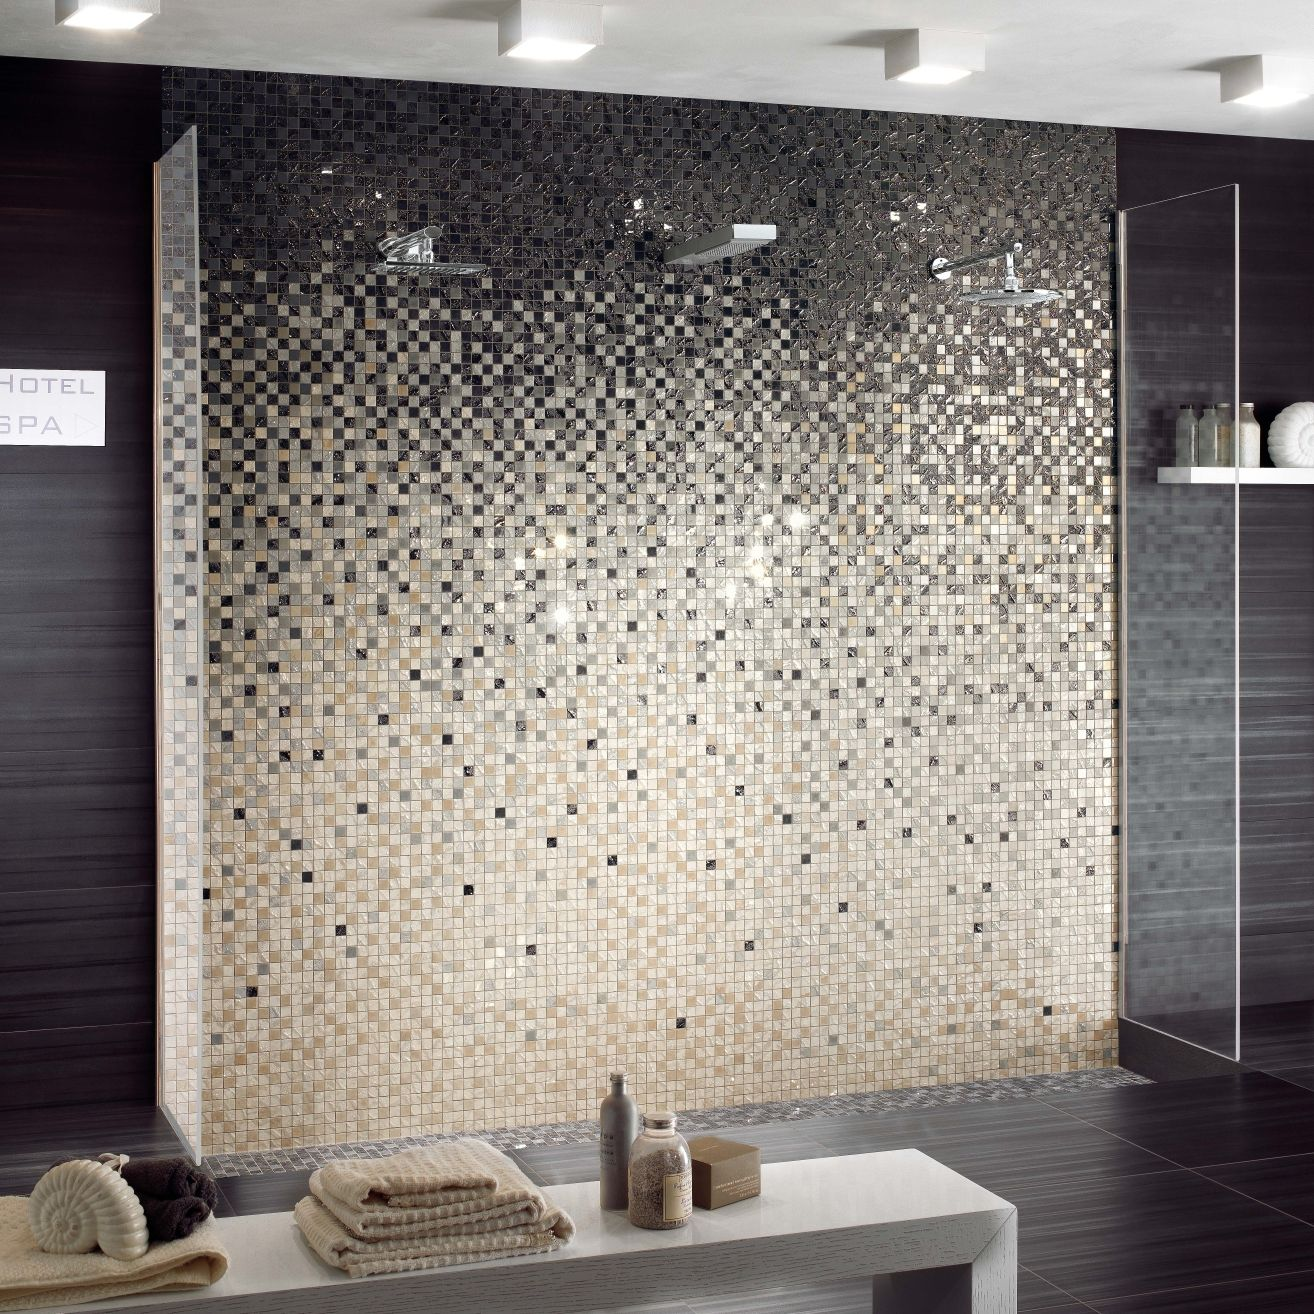 Indoor mosaic tile / bathroom / wall / porcelain stoneware - FOUR ...